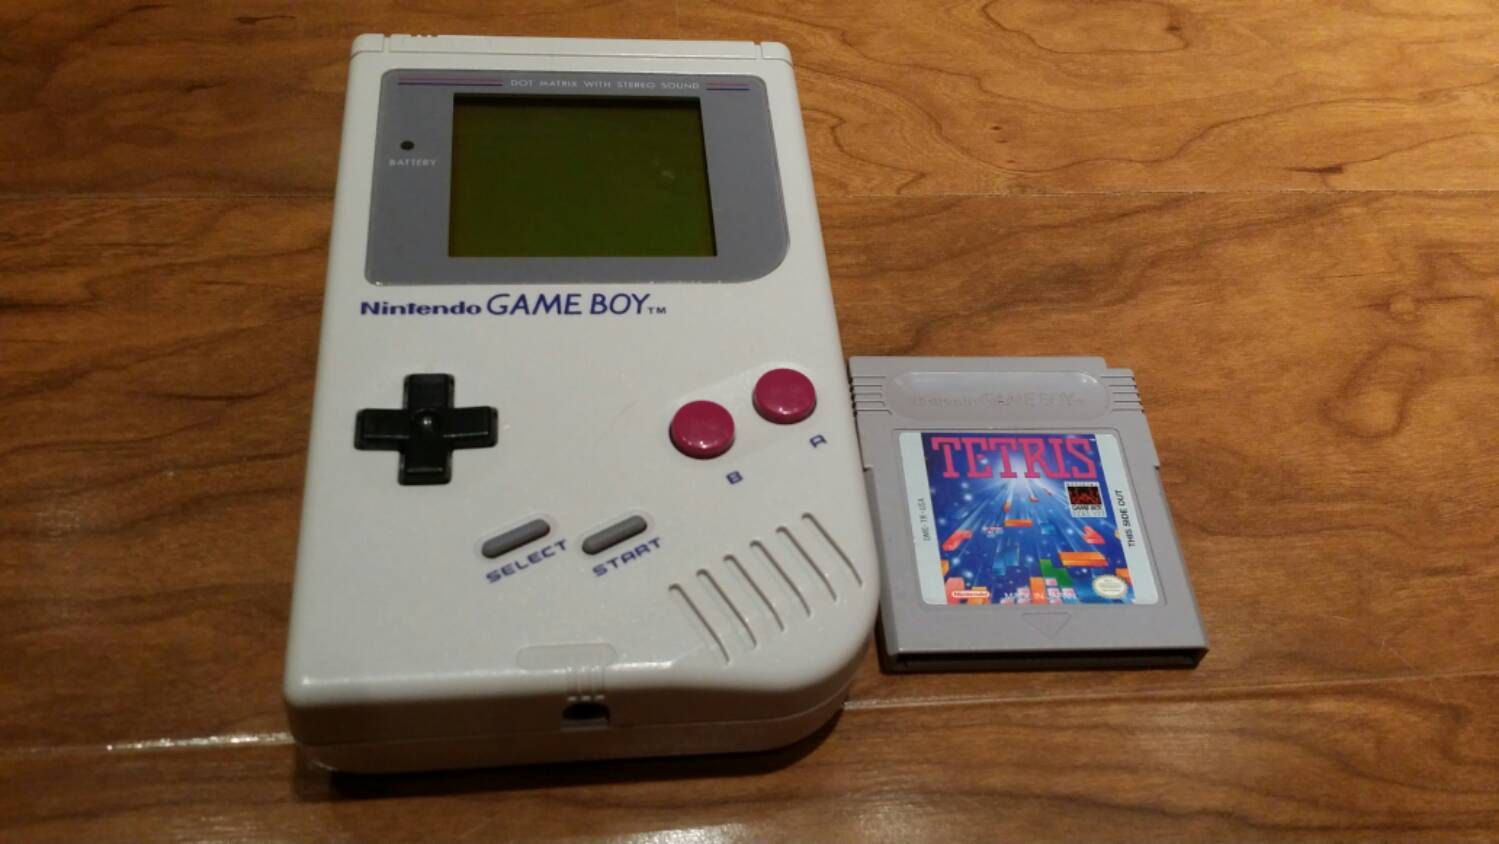 Nintendo Game Boy Handheld Console With Tetris Game Original Nintendo Gameboy Gameboy Tetris Gameboy Nintendo Tetris Game